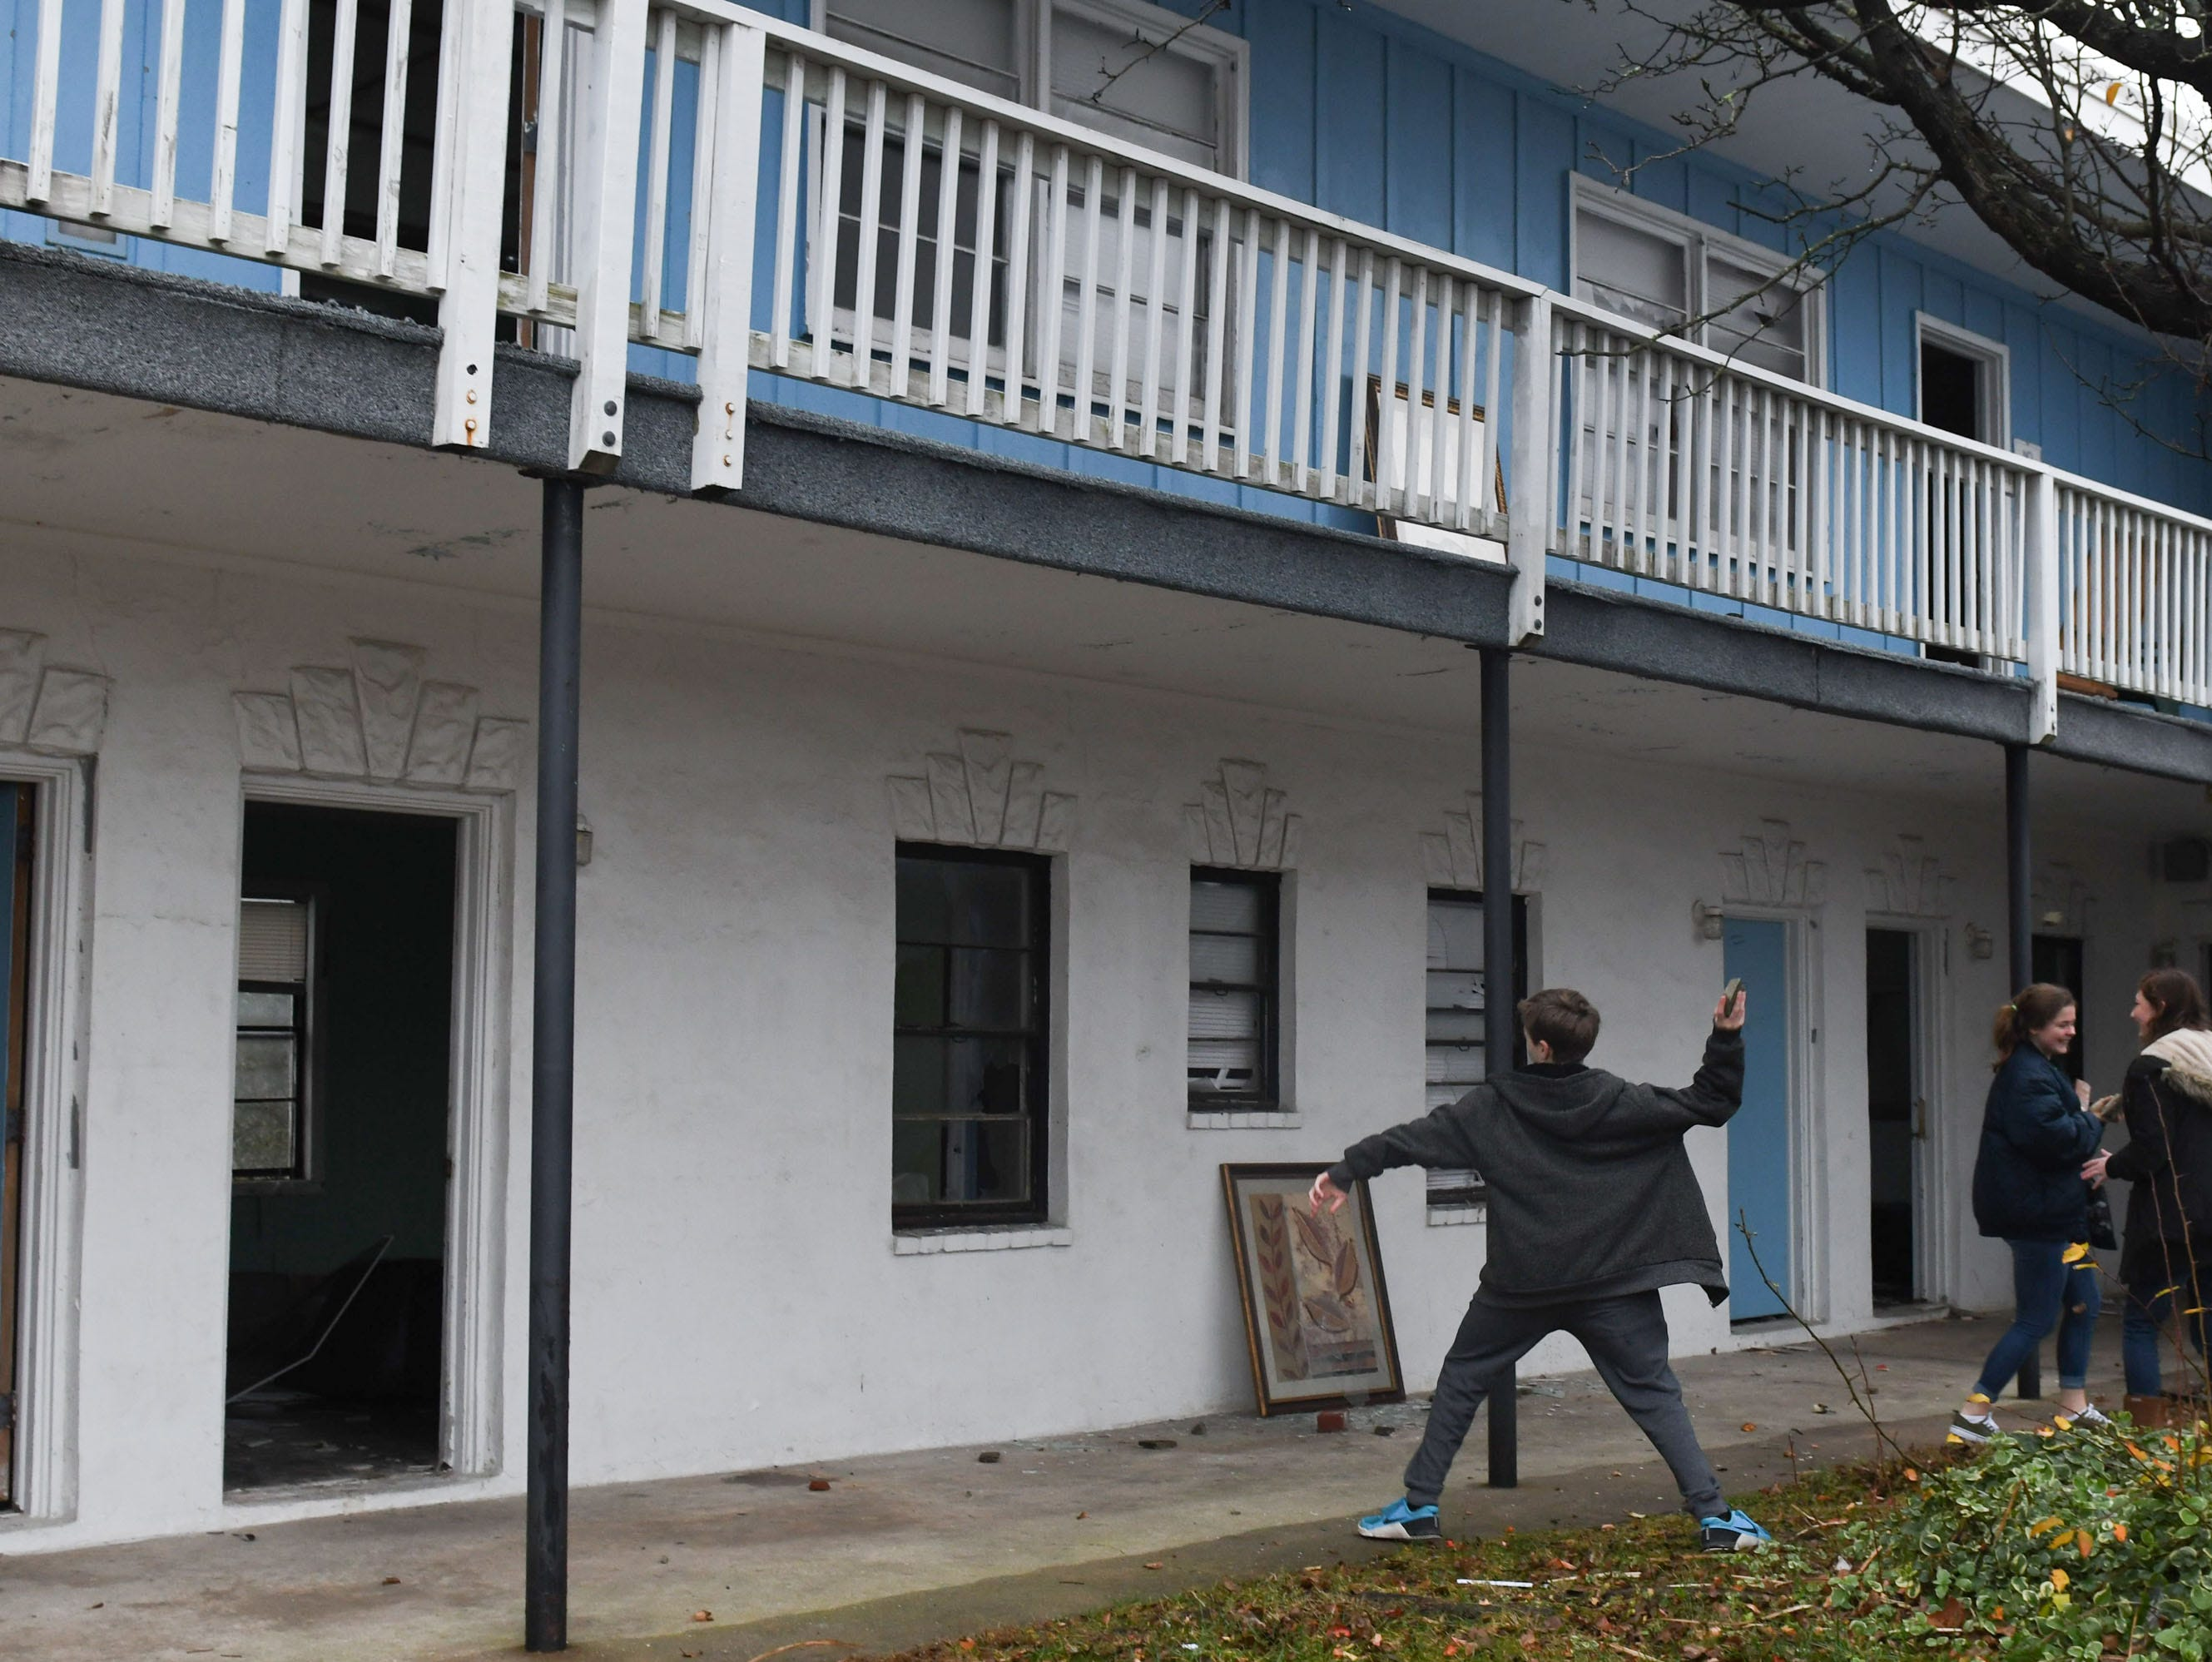 """The community said good bye to the Sands Motel located in Fenwick Island, Del. on Thursday, Dec. 20, 2018. During a """"Demo Party"""" held by the owners of the property. Anyone could come throw some rocks to break the windows before the demo began."""